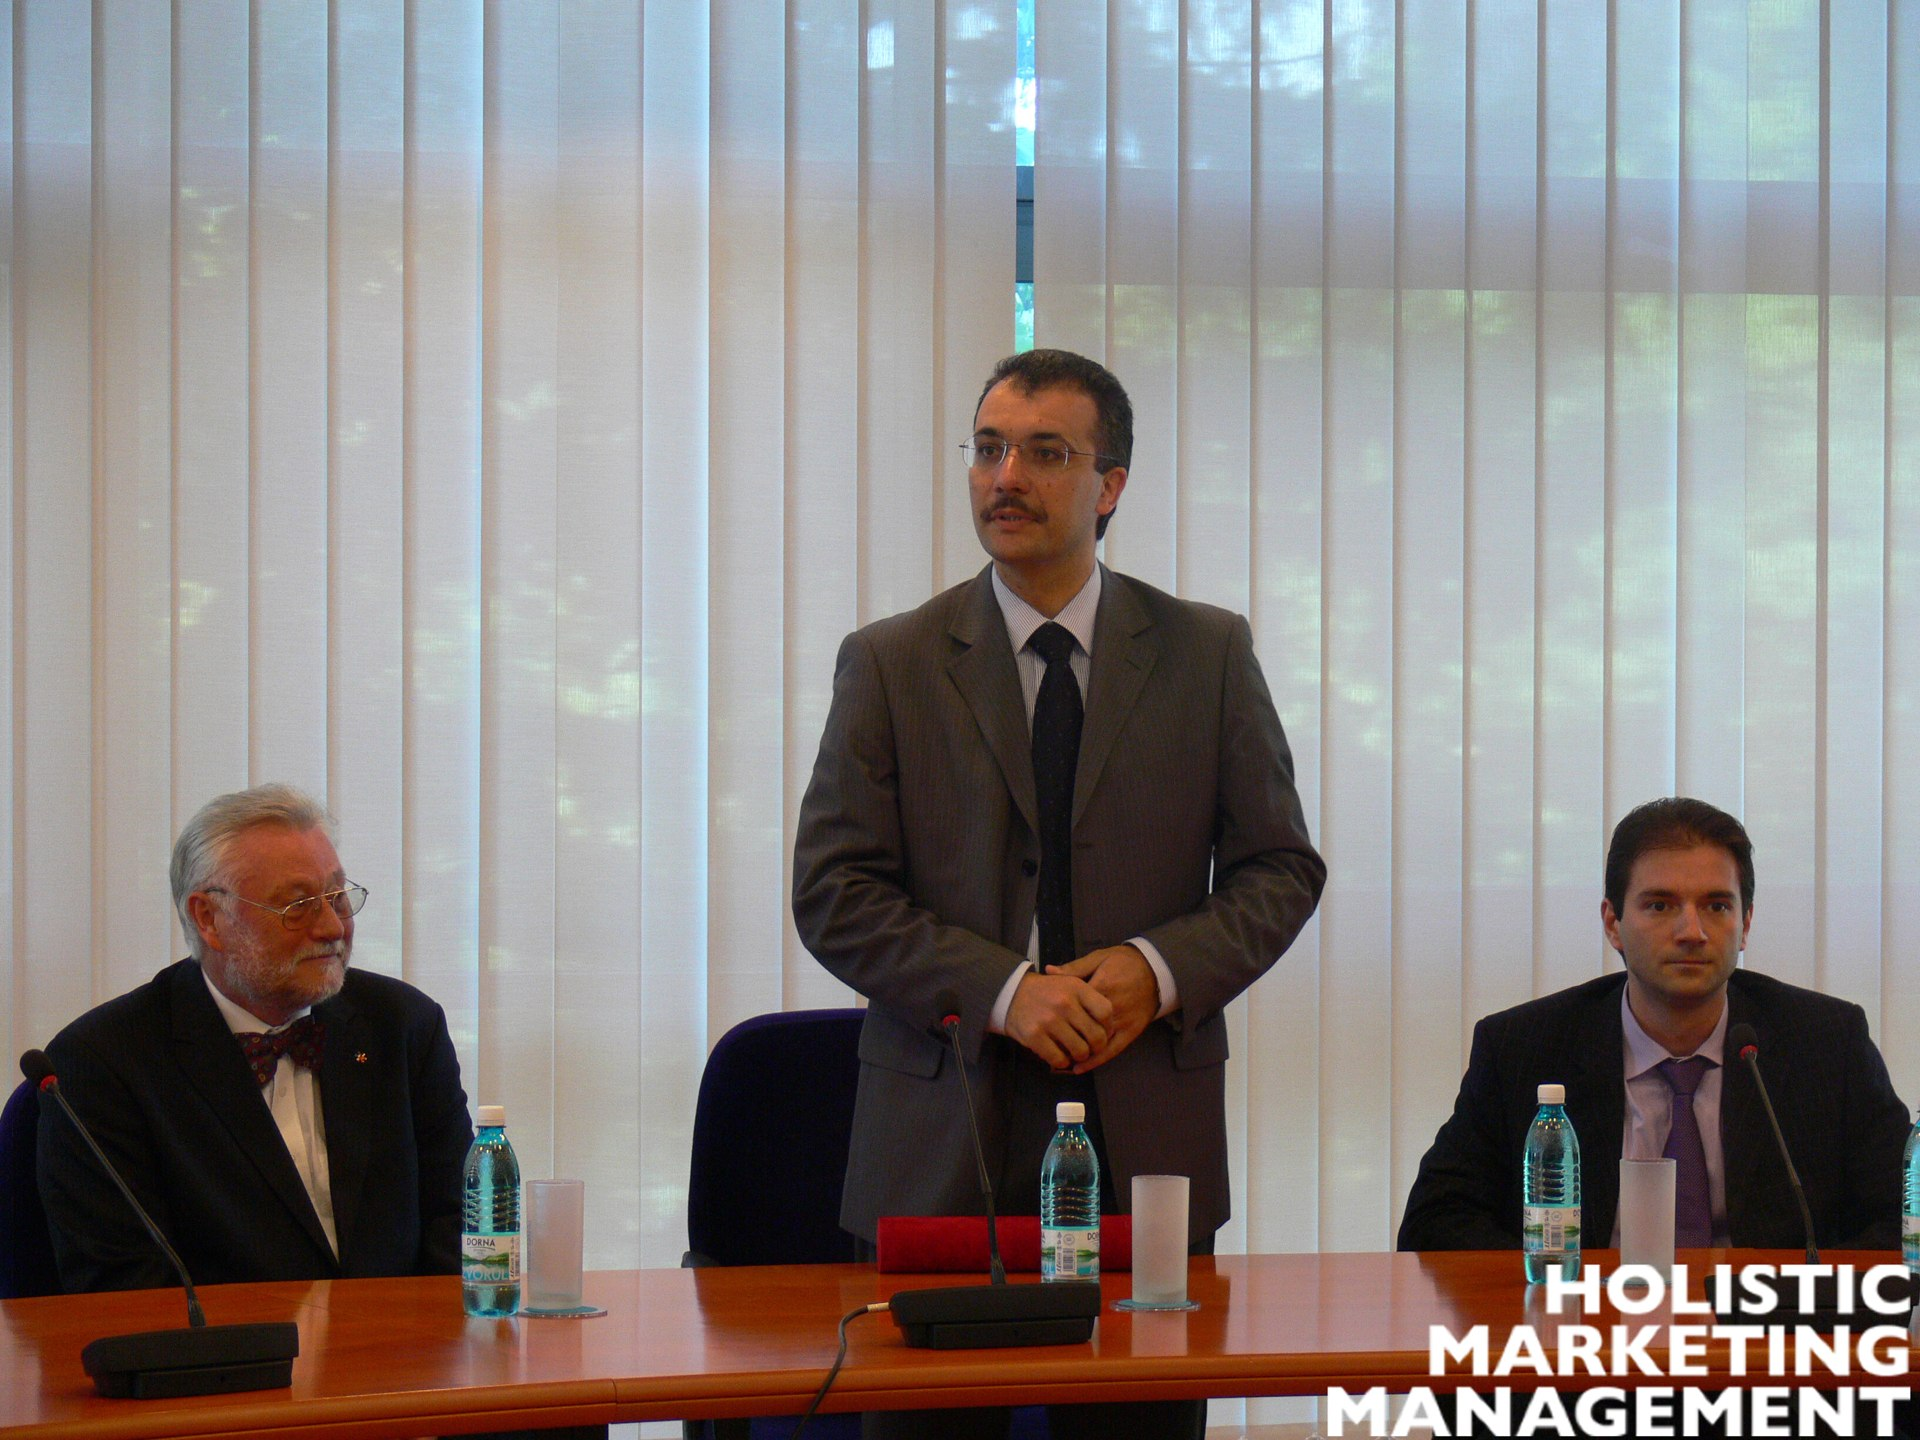 - Rector-Ovidiu-Folcut-between-the-special-invitee-Bernd-Hallier-at-the-left-and-Dean-Alexandru-Ionescu-at-the-right-opening-the-awarding-ceremony-on-the-1st-of-June-2011-copy1